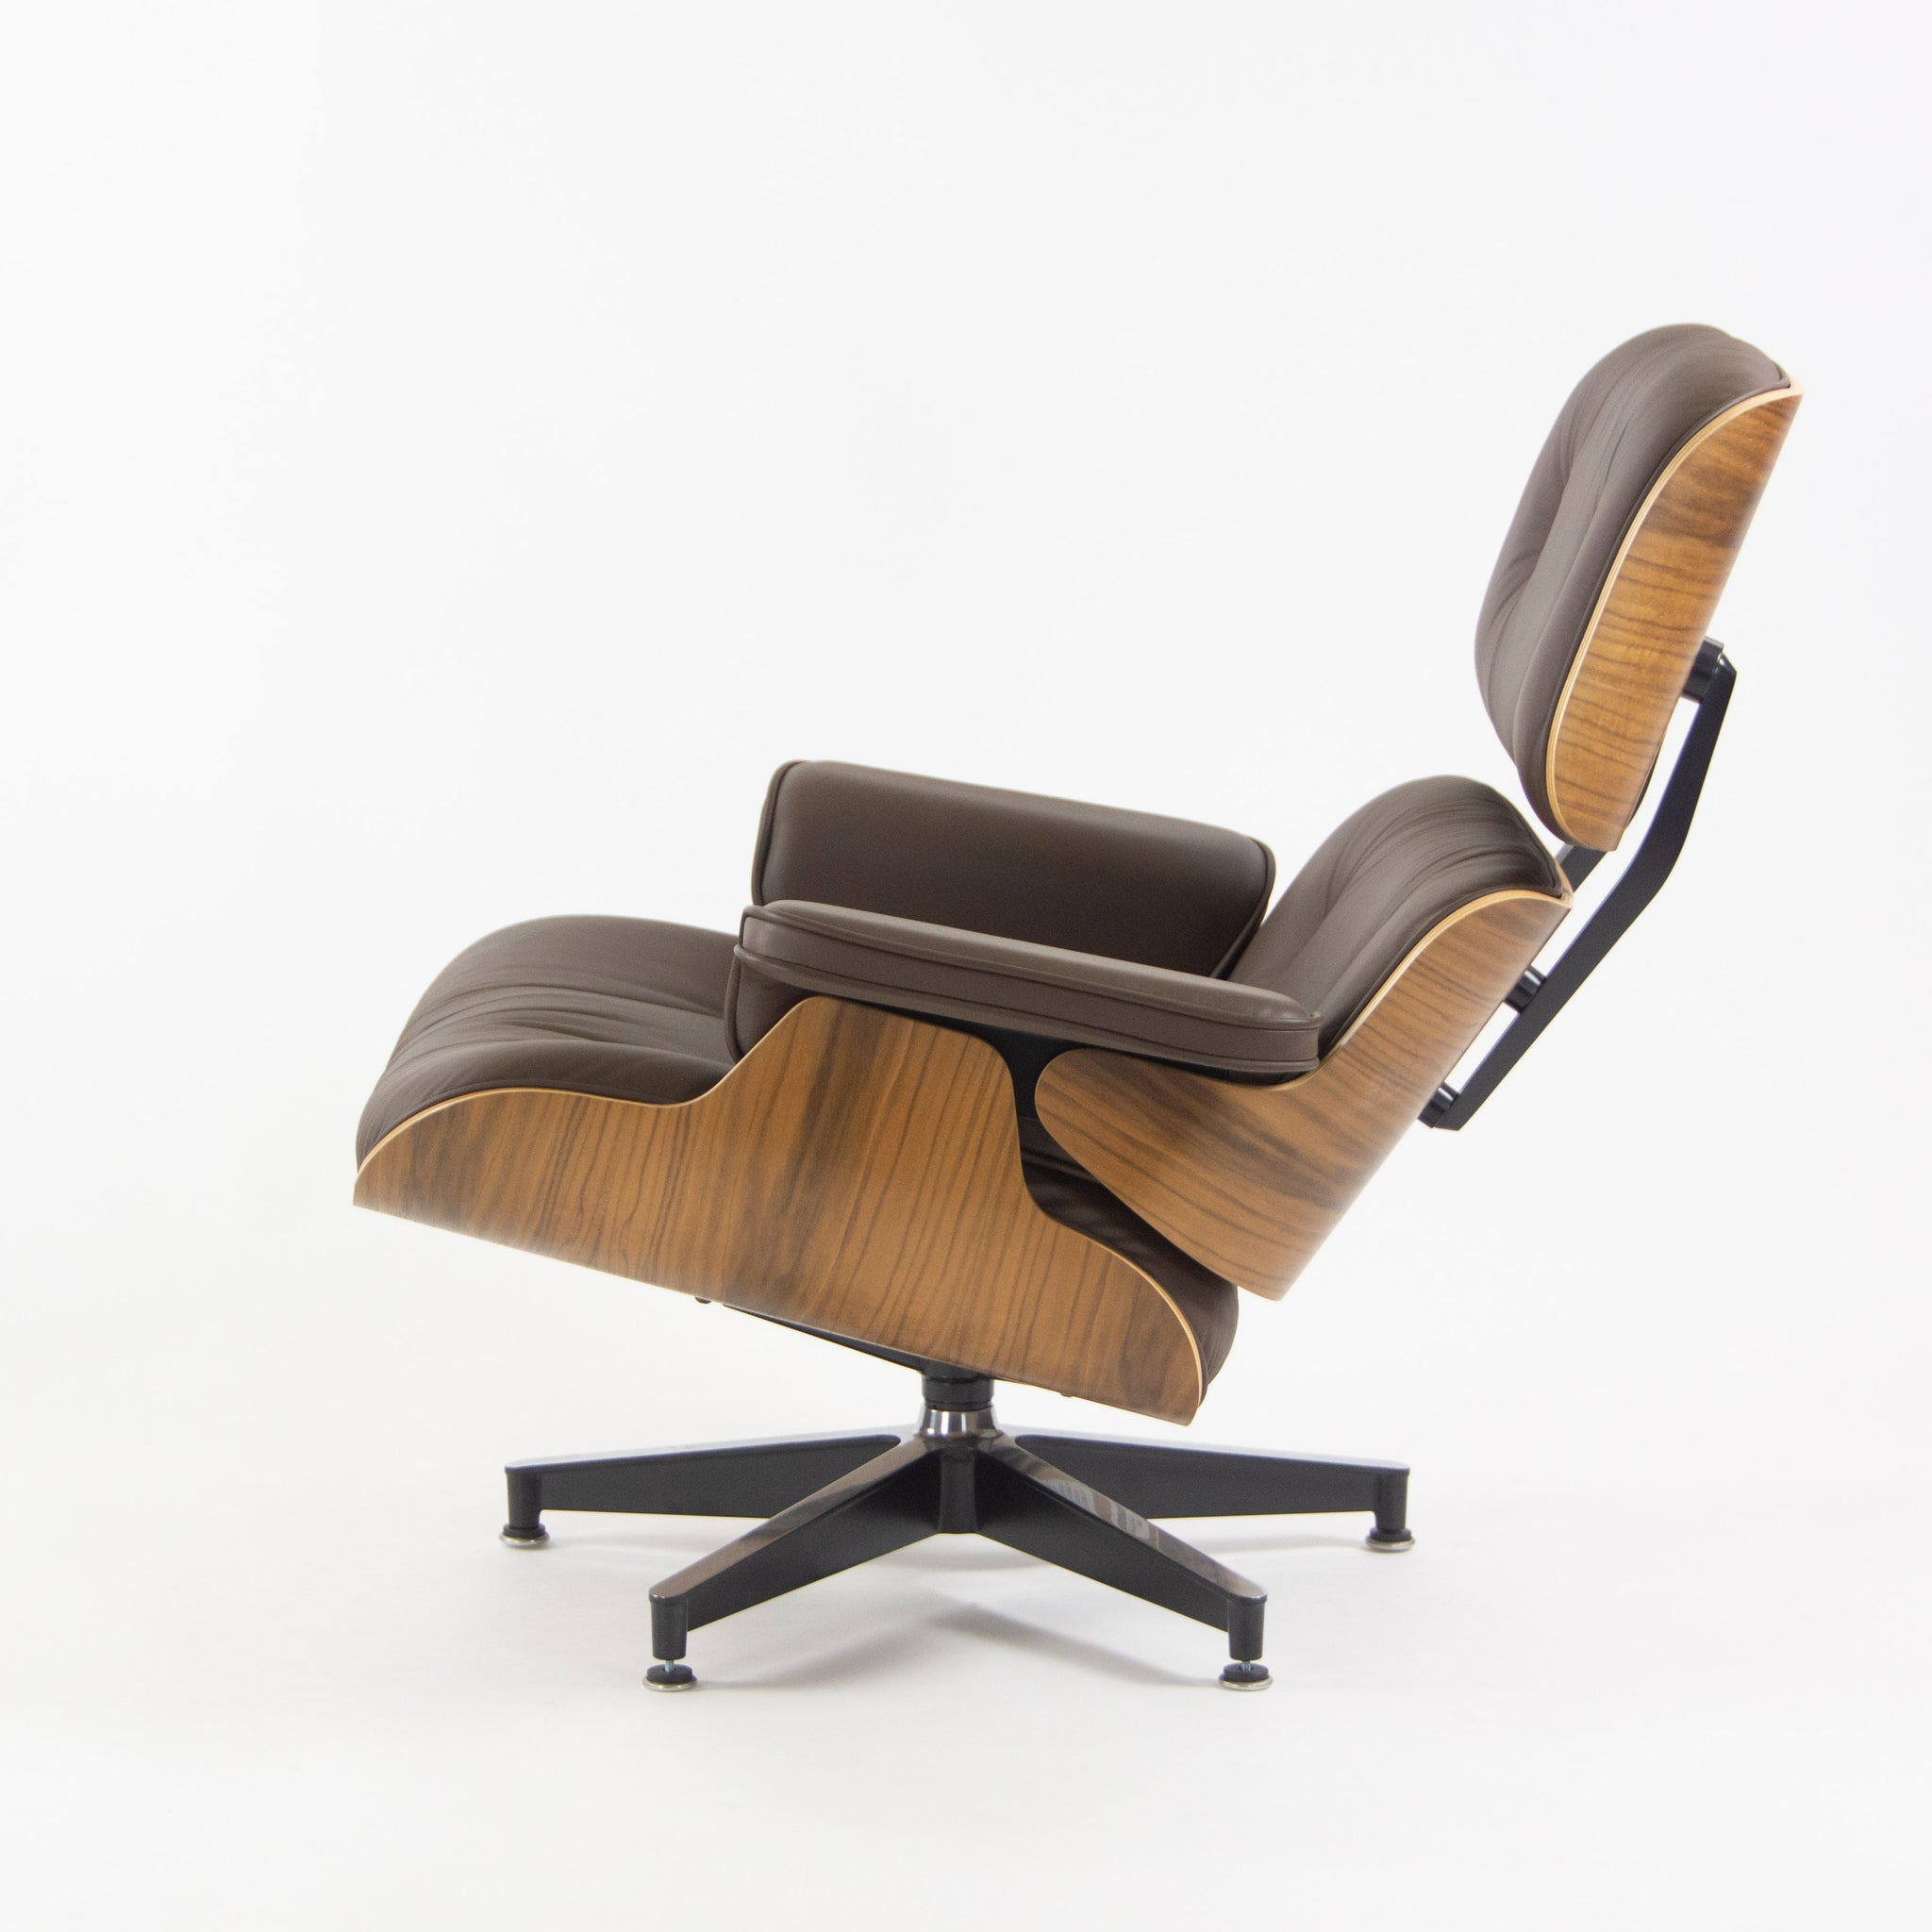 SOLD Herman Miller 2019 Brand New Eames Lounge Chair and Ottoman Walnut Brown Leather